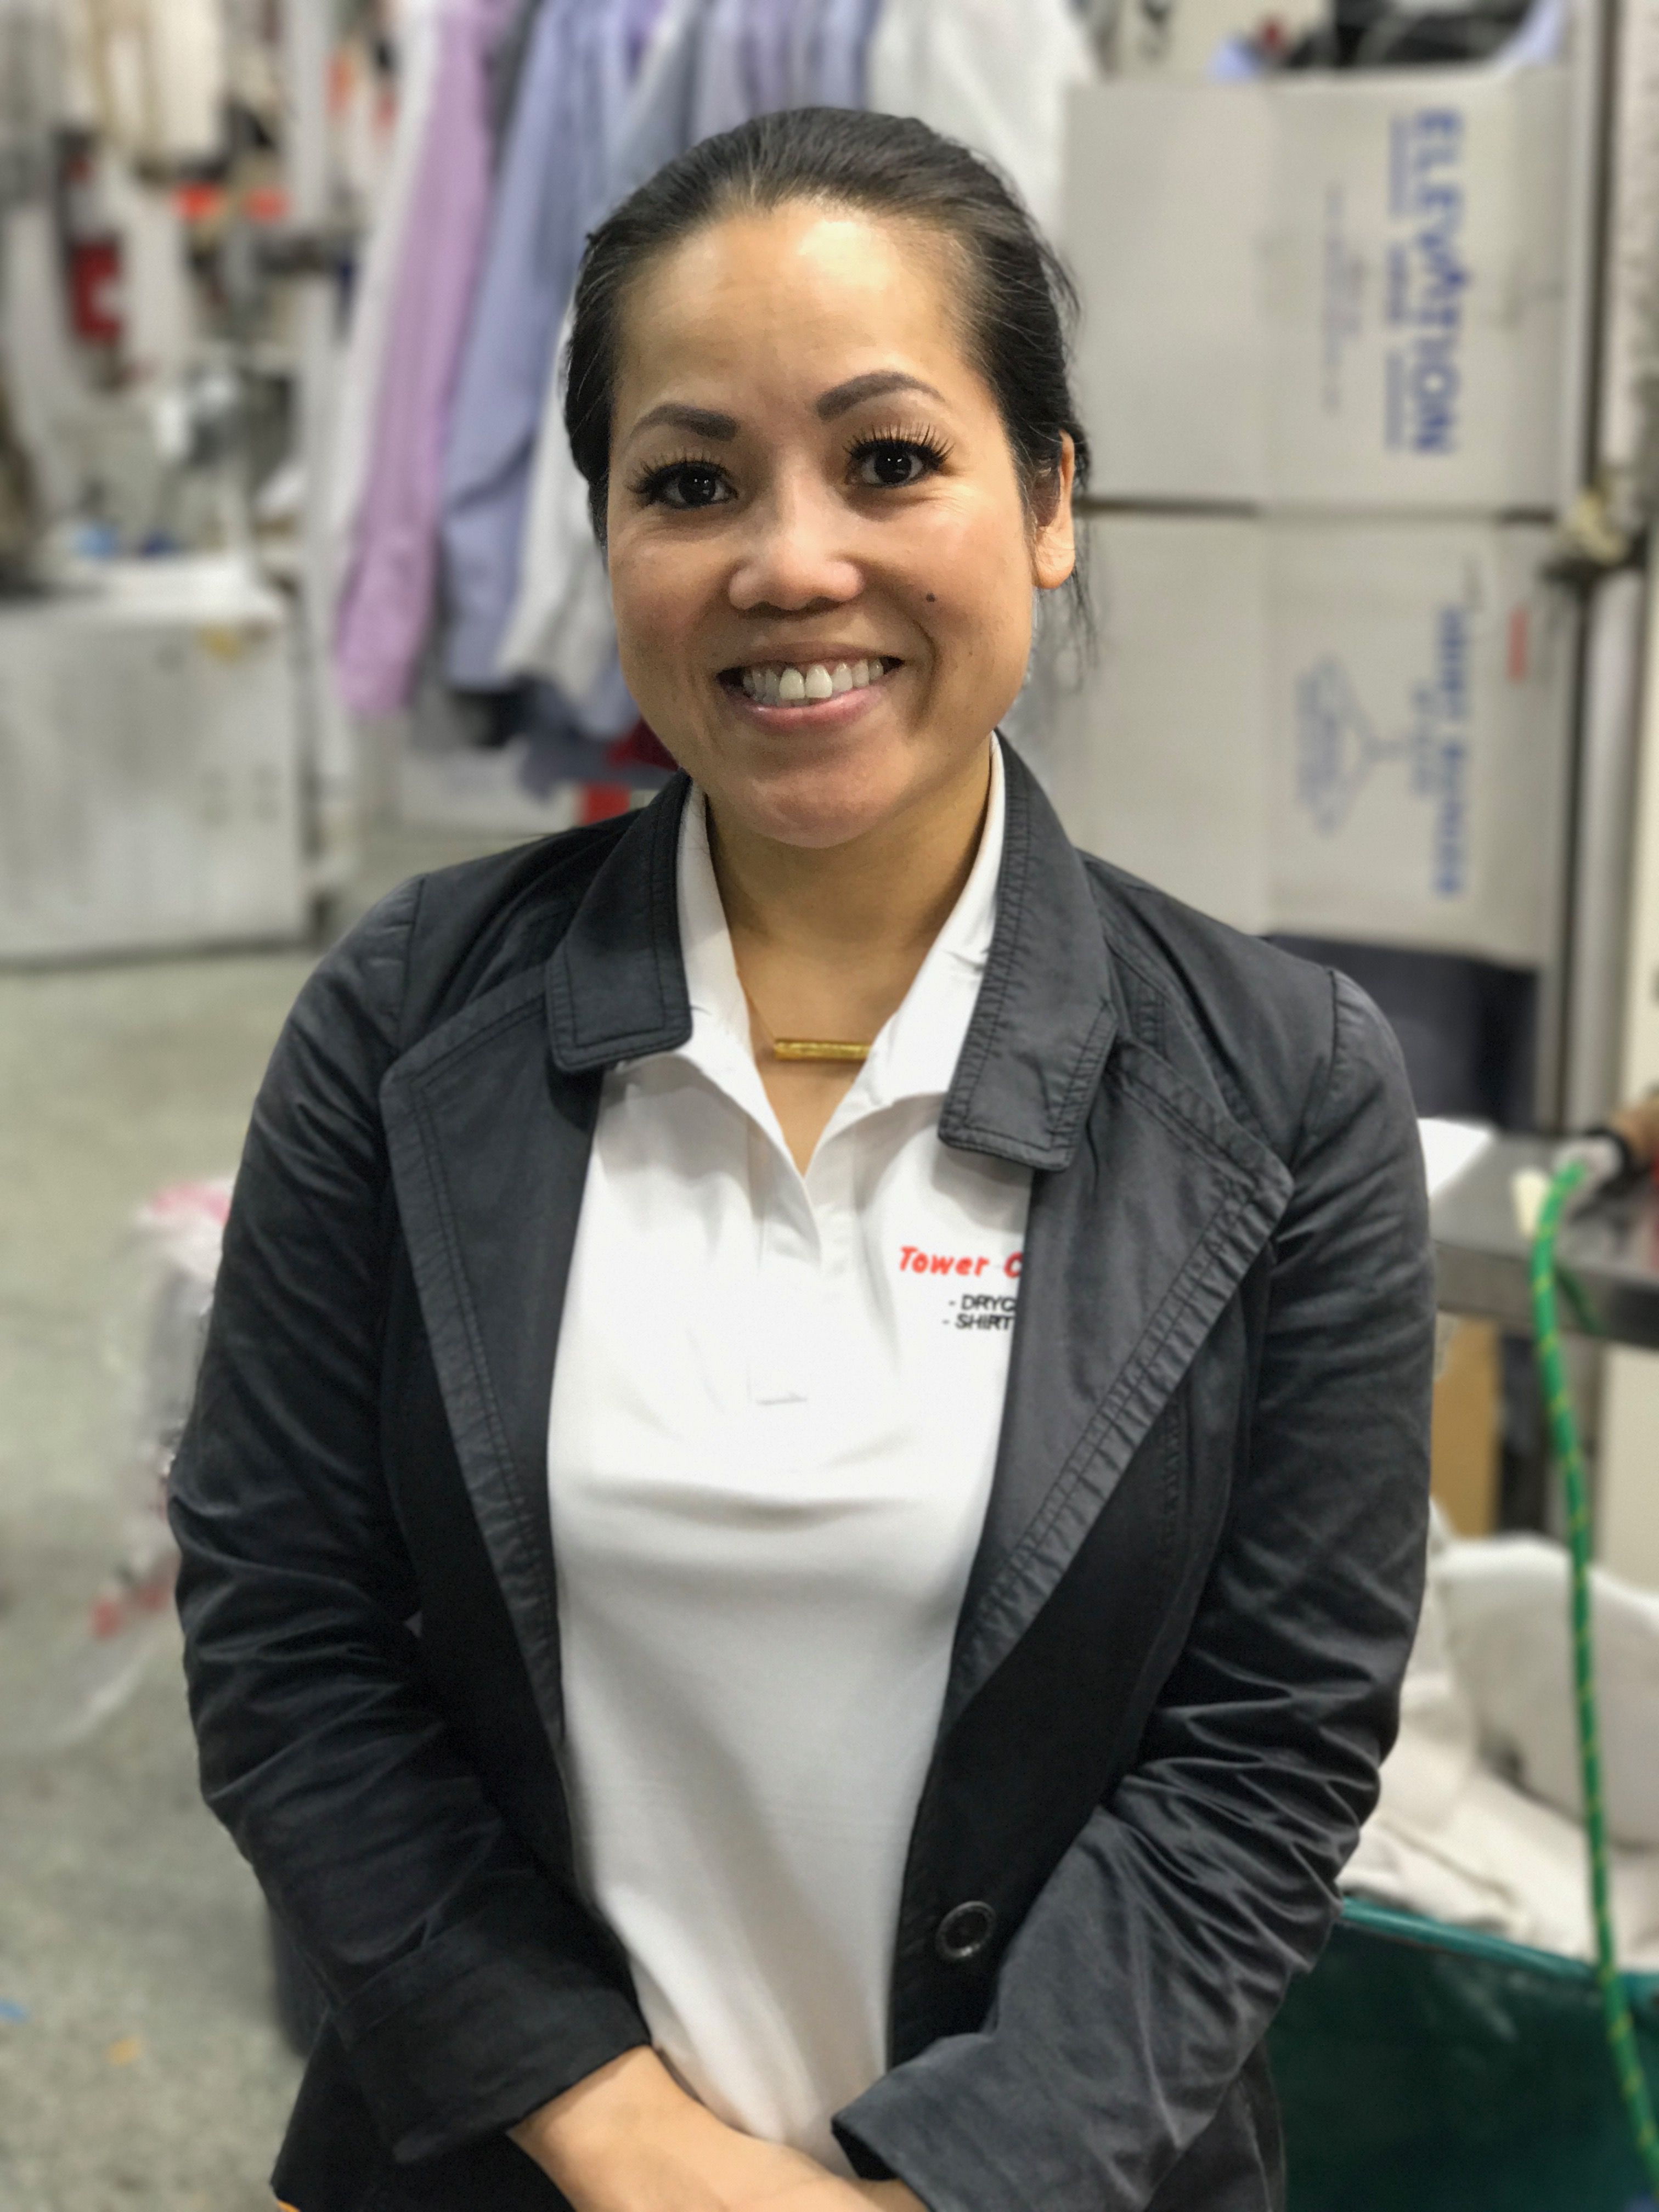 Nicky Pathammawong, Day Production Manager at Tower Cleaners